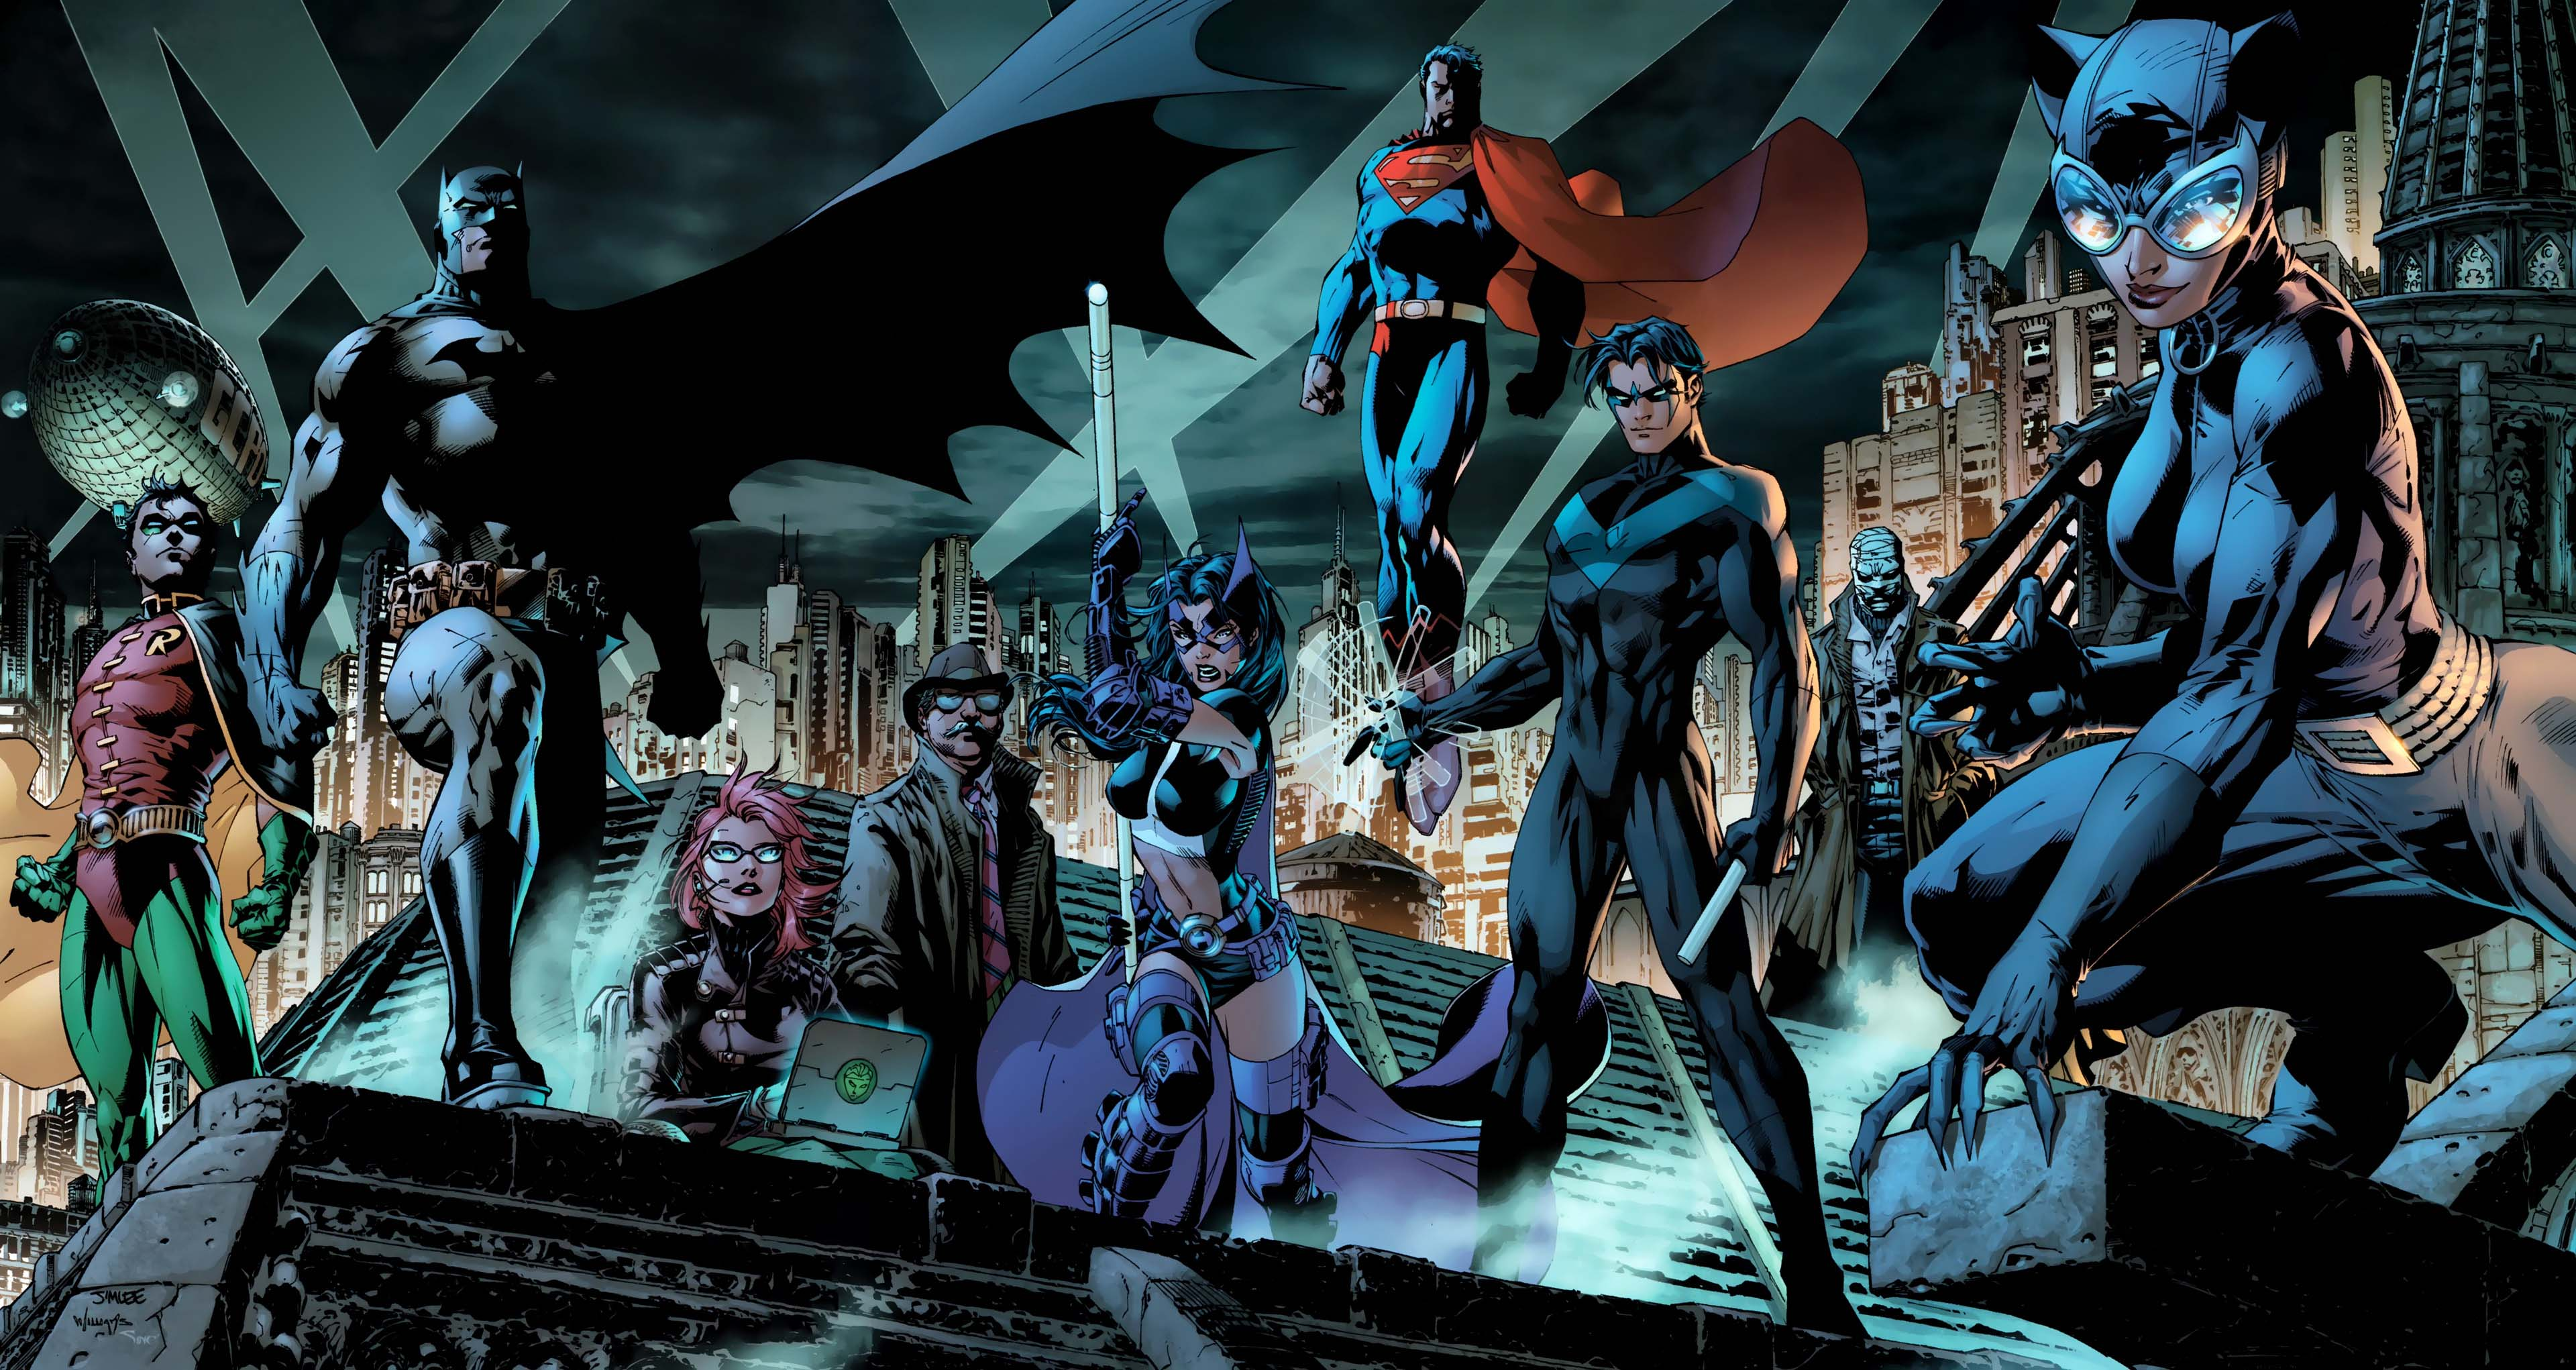 Dc comics full hd wallpaper and background image 3840x2042 id621197 comics dc comics robin dc comics batman superman nightwing catwoman huntress dc voltagebd Images